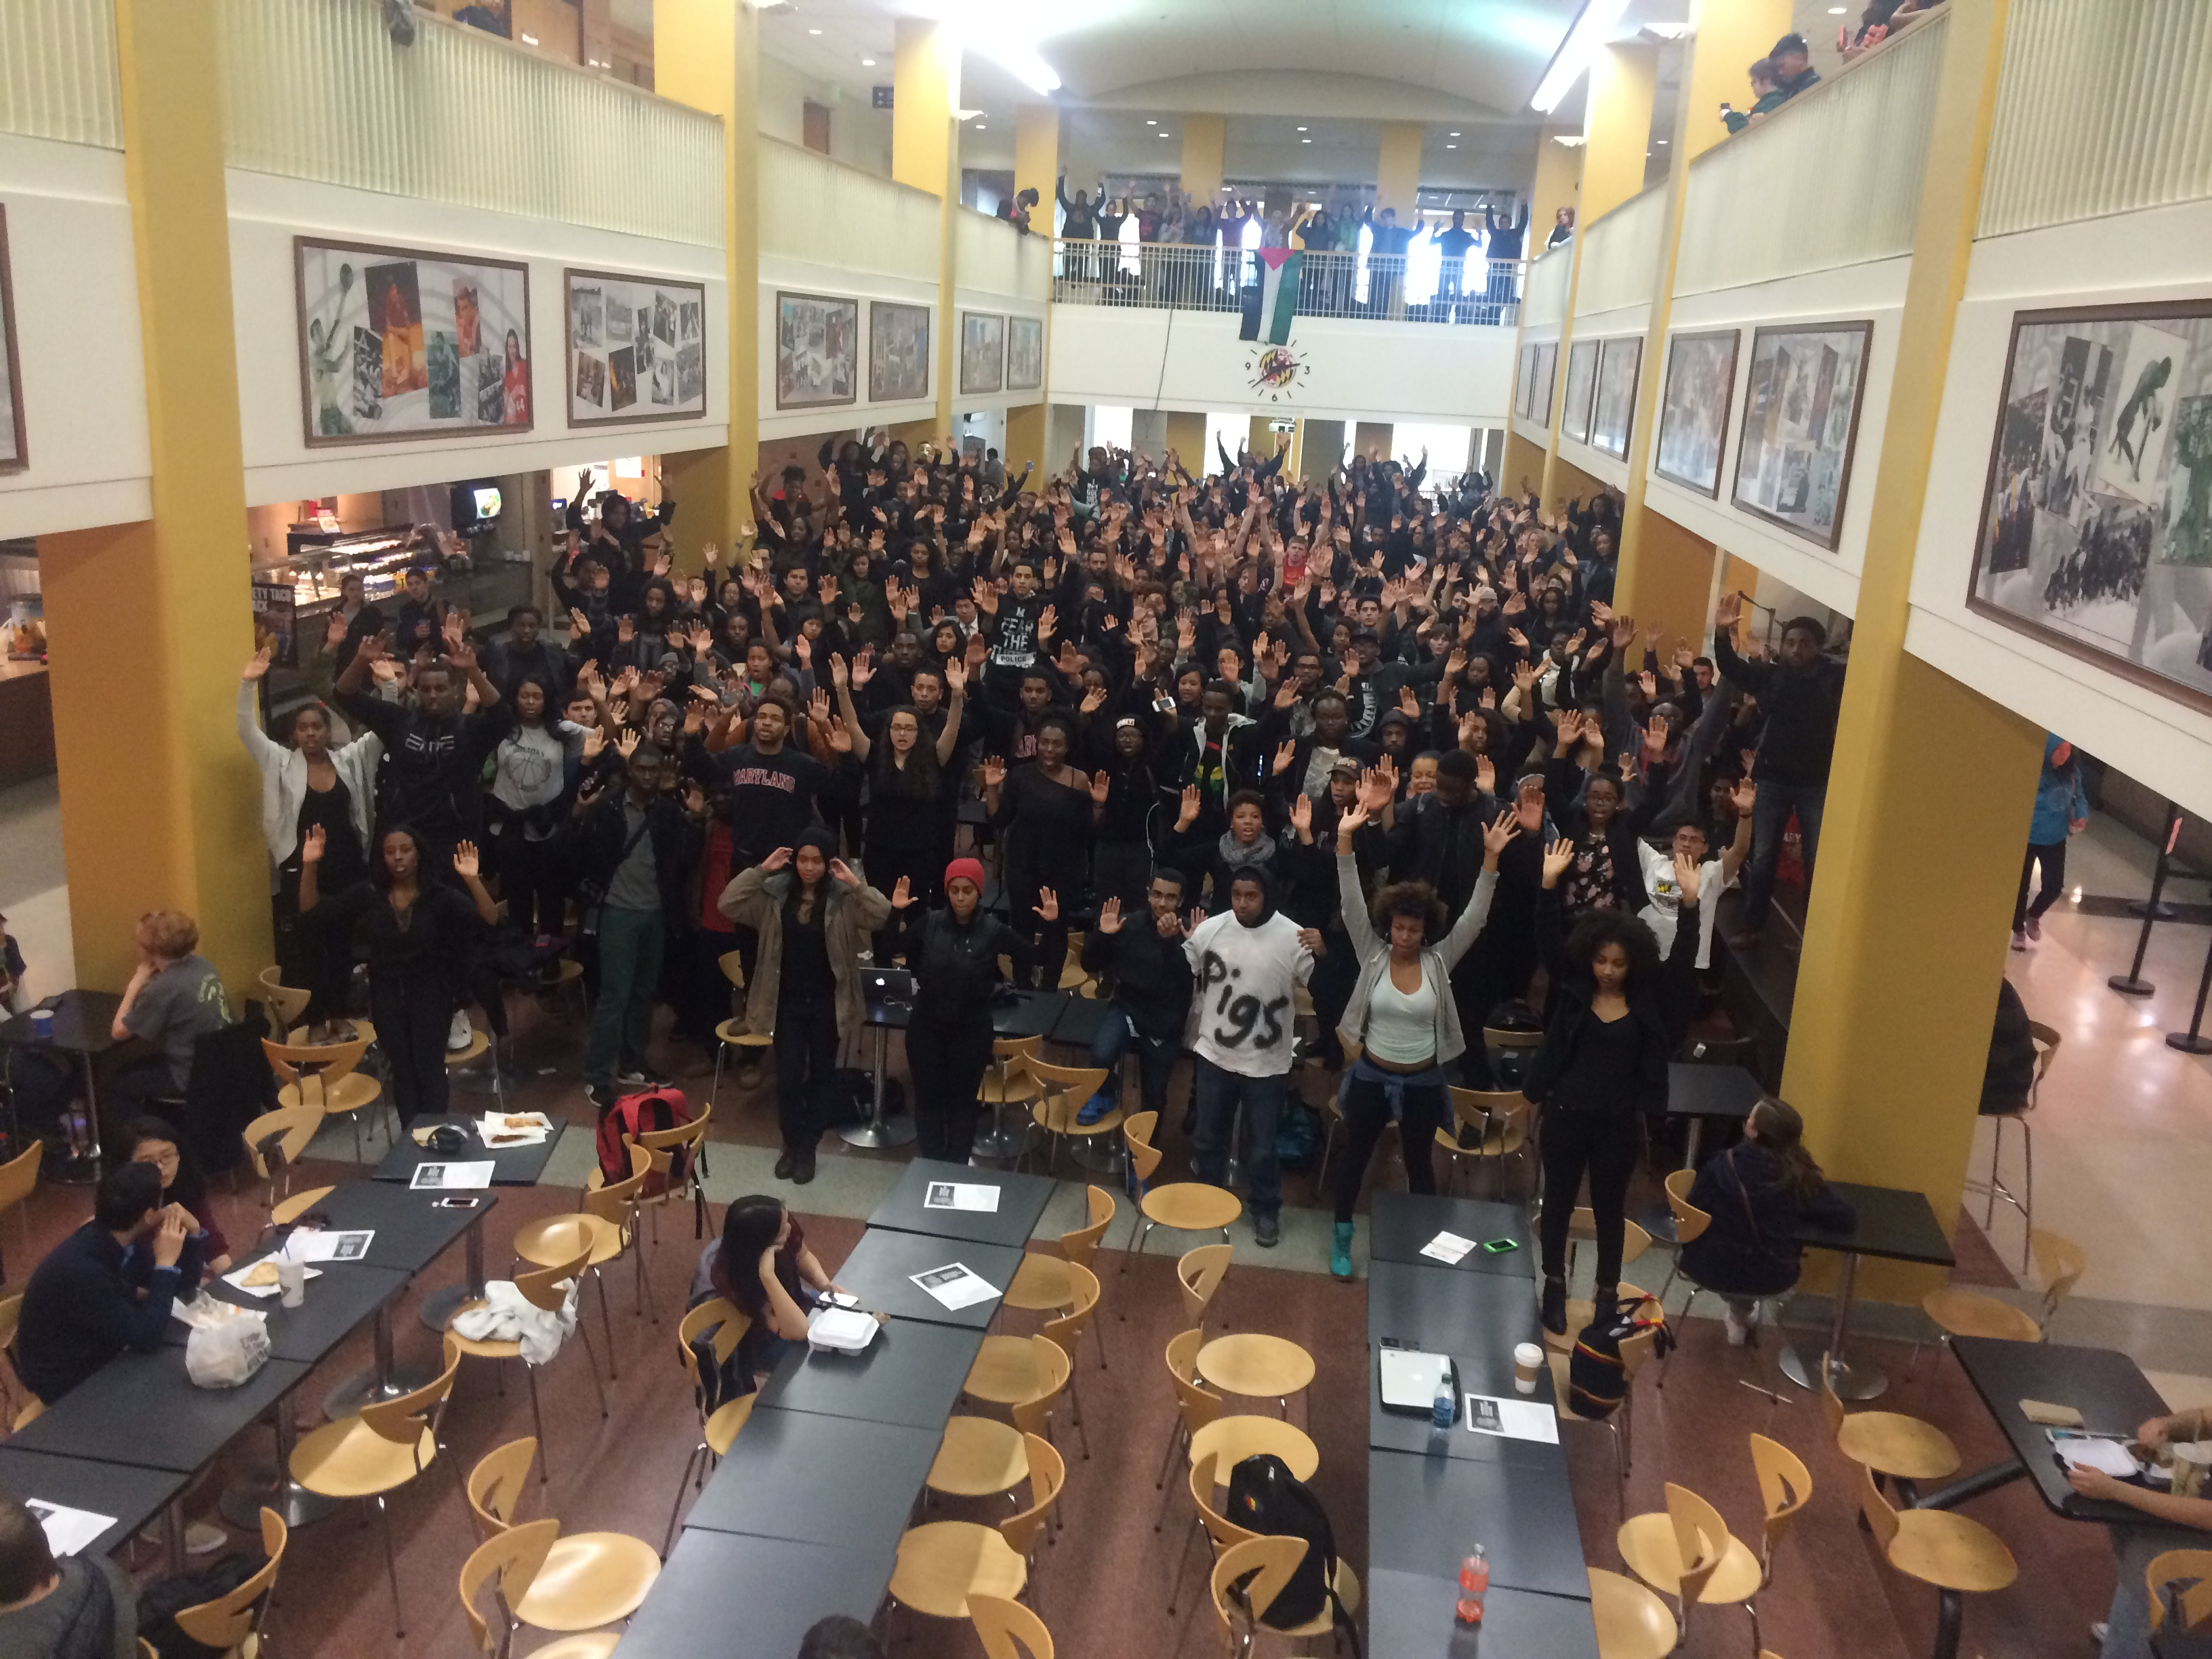 UMD Students #OCCUPYSTAMP (PICTURES, VIDEO AND AUDIO